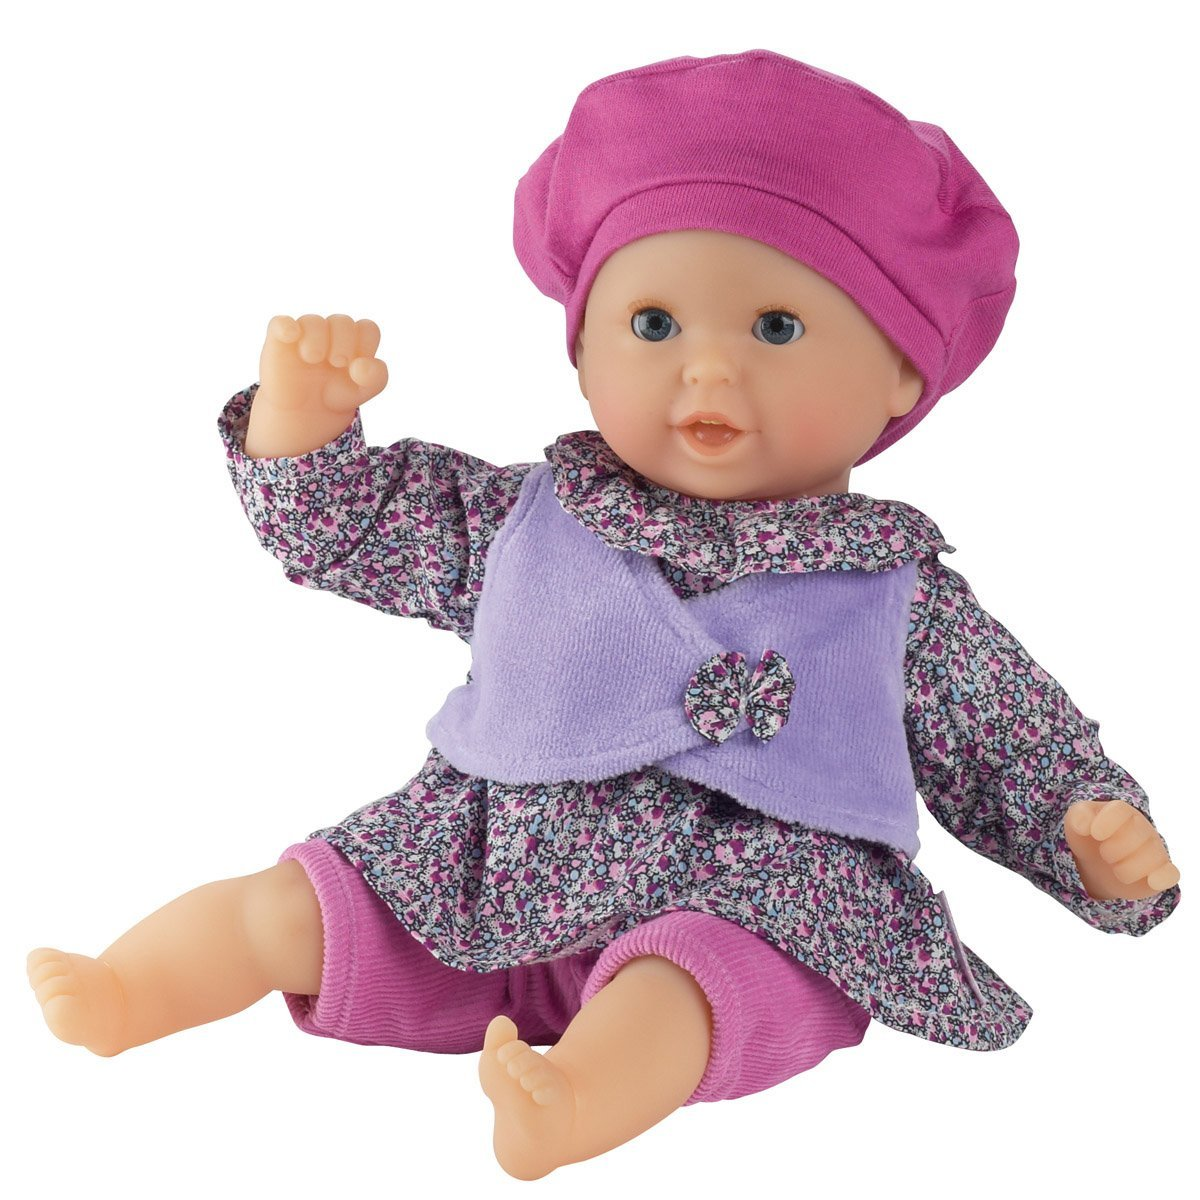 Corolle Mon Premier Calin Laughing Blueberry Baby Doll at Sears.com